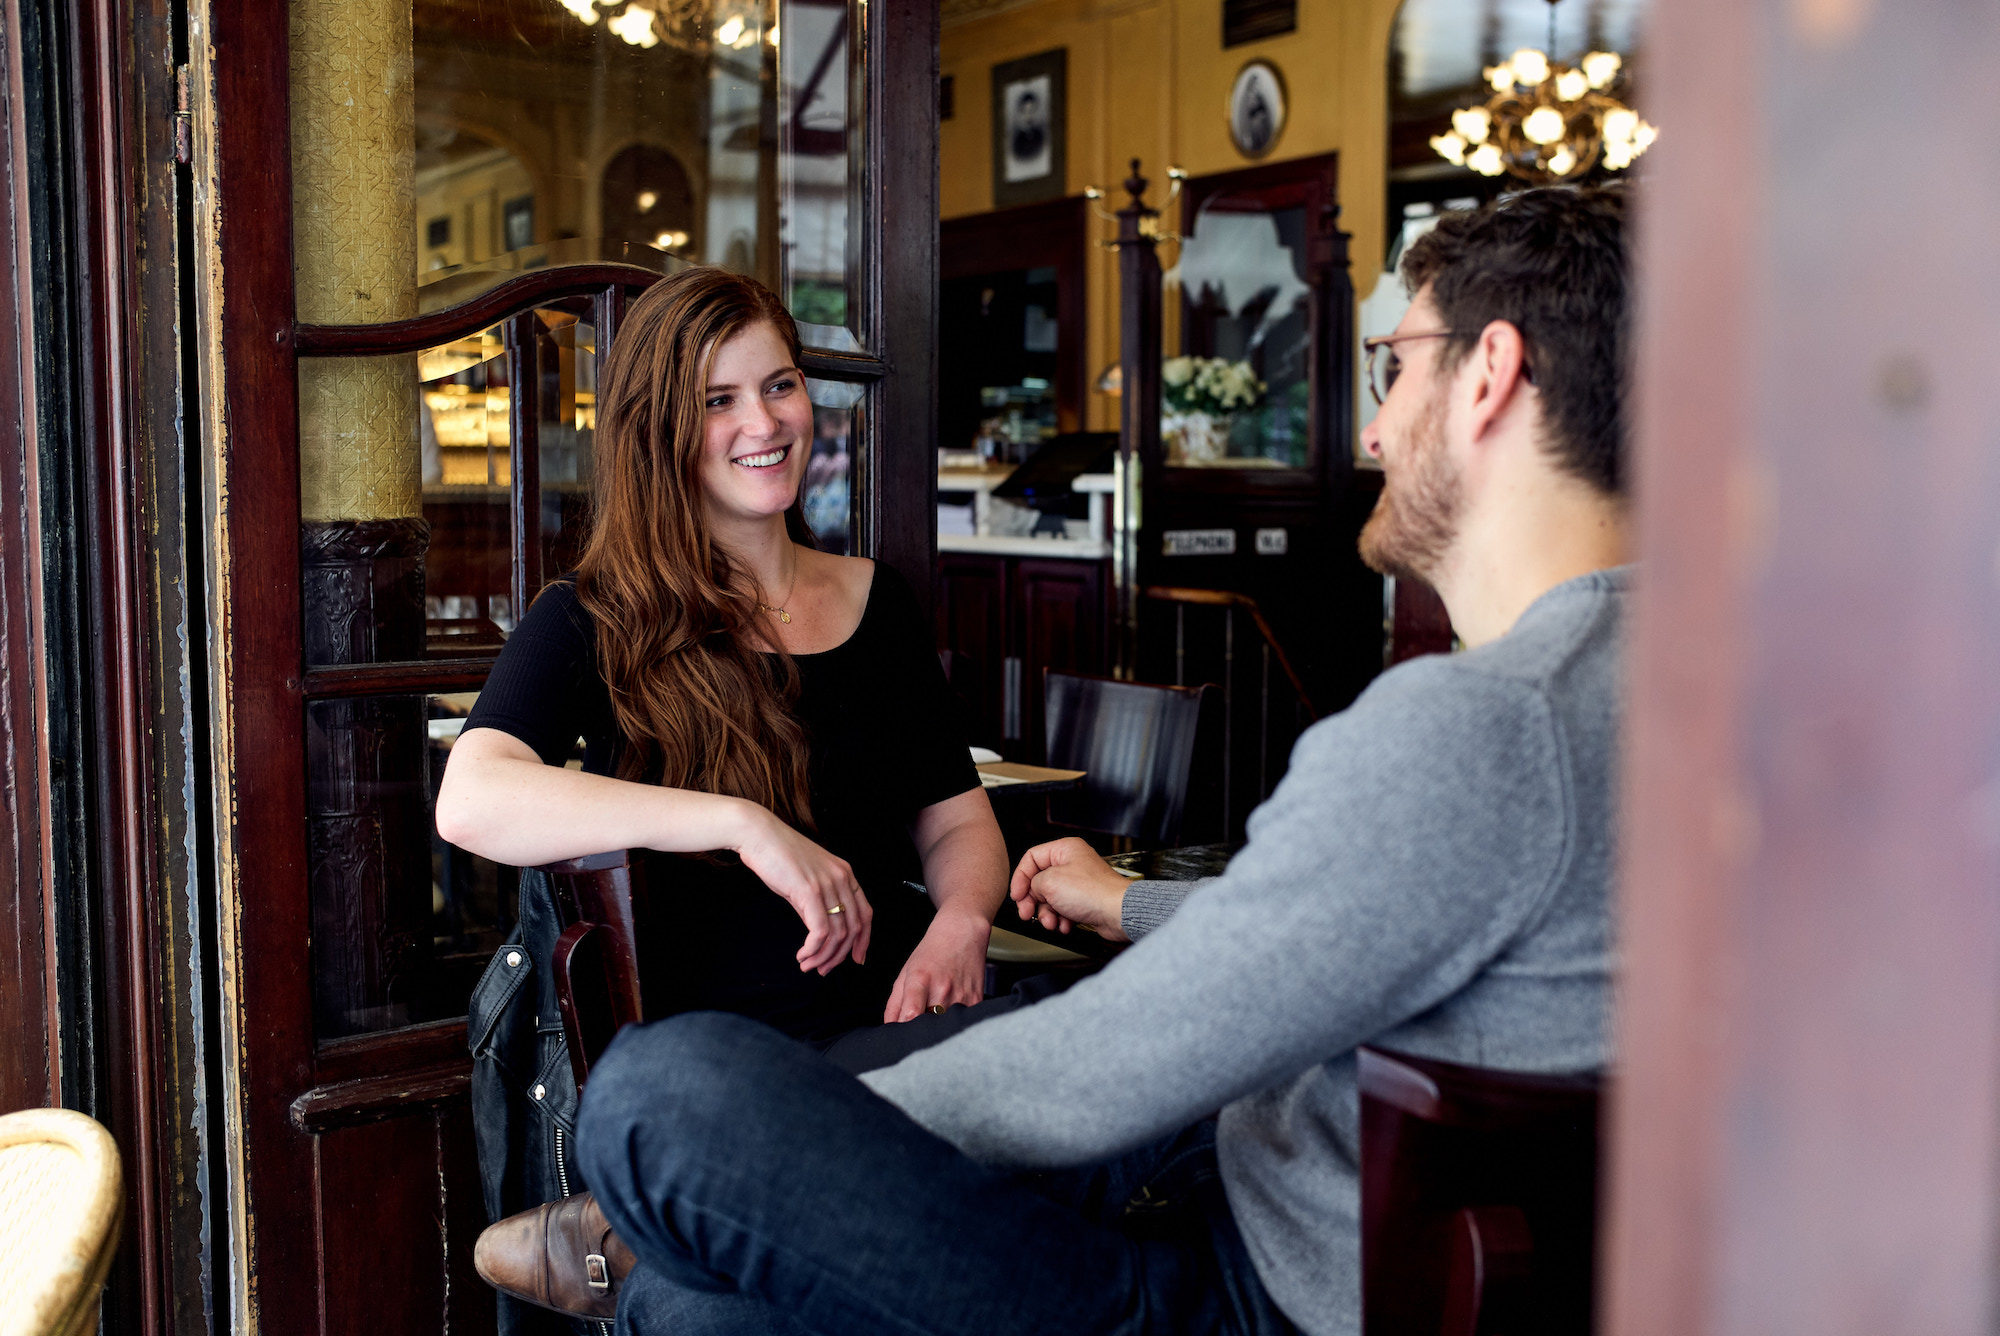 A young man and woman living in Paris and sat in a typical Paris bistro with wood interiors.